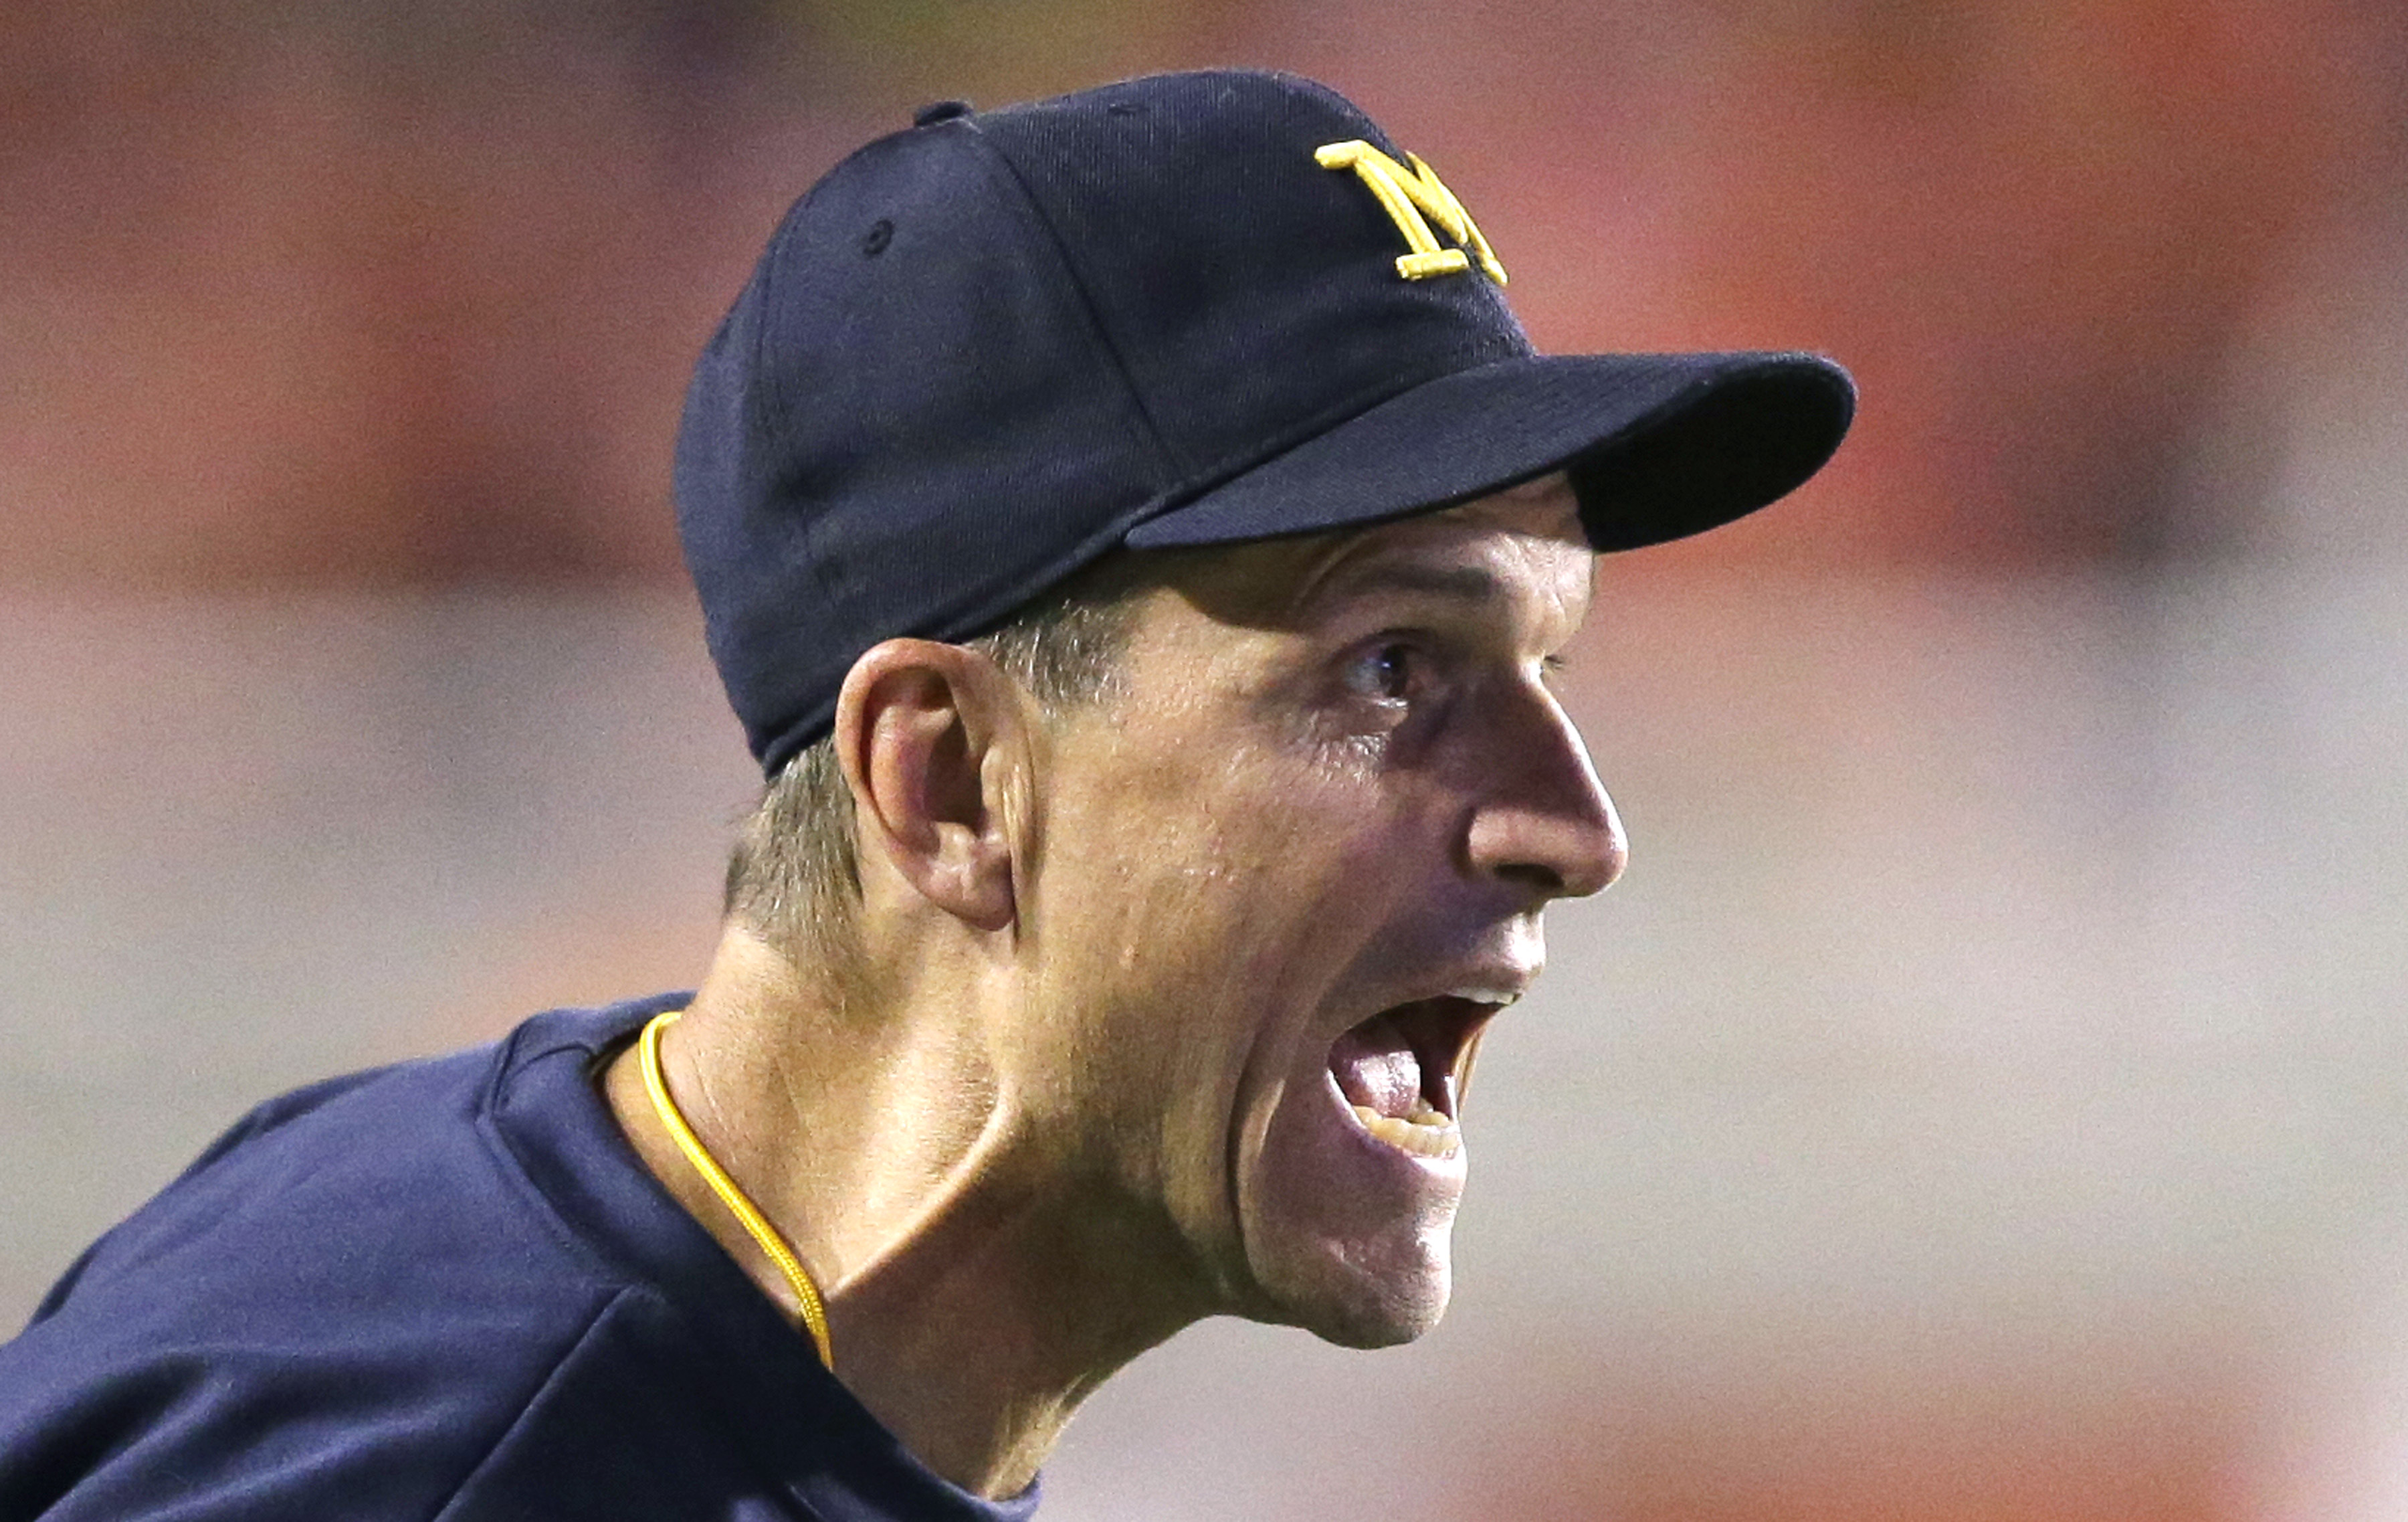 Michigan head coach Jim Harbaugh shouts to his team in the second half during an NCAA college football game against Utah, Thursday, Sept. 3, 2015, in Salt Lake City. Utah won 24-17. (AP Photo/Rick Bowmer)